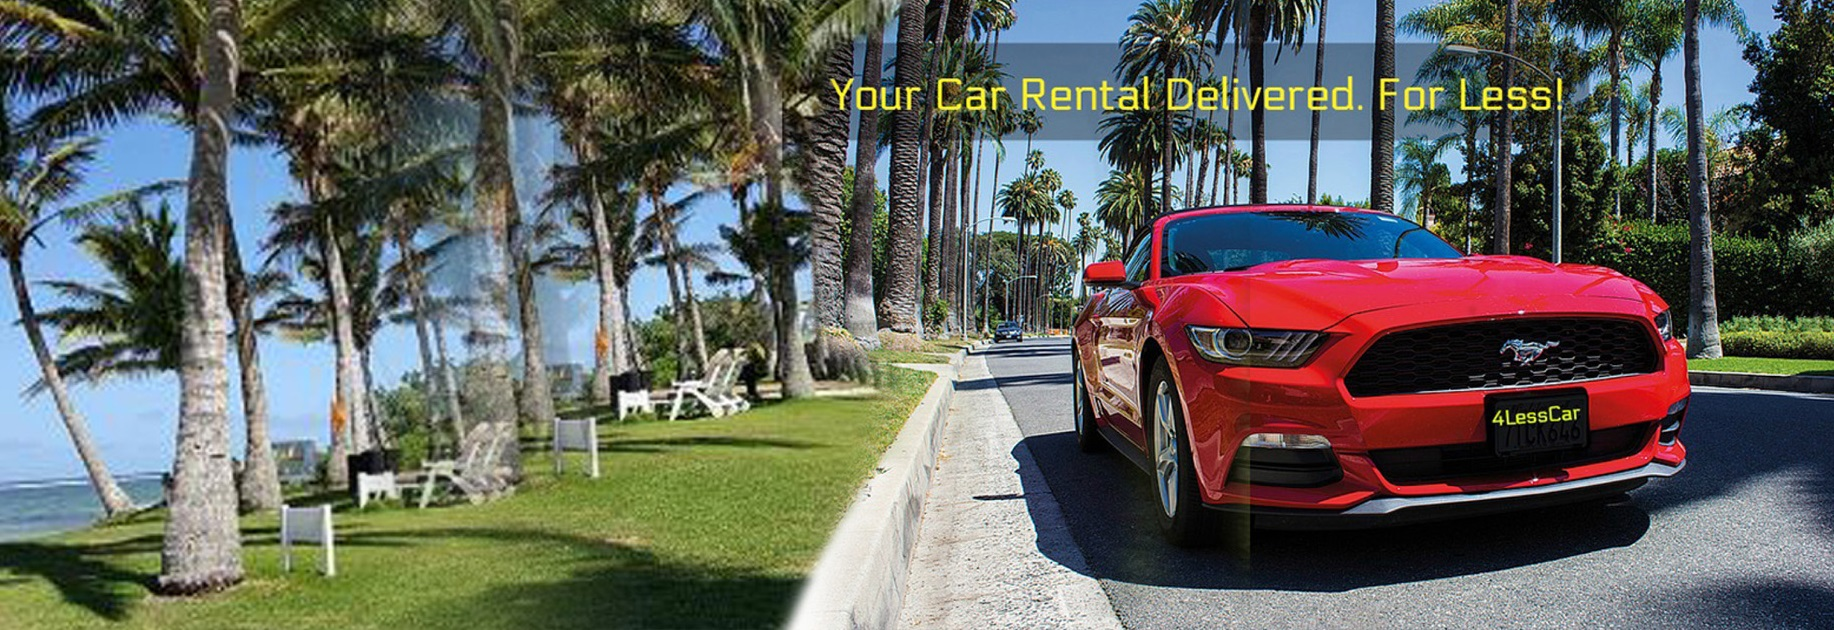 Your car rental delivered for less!